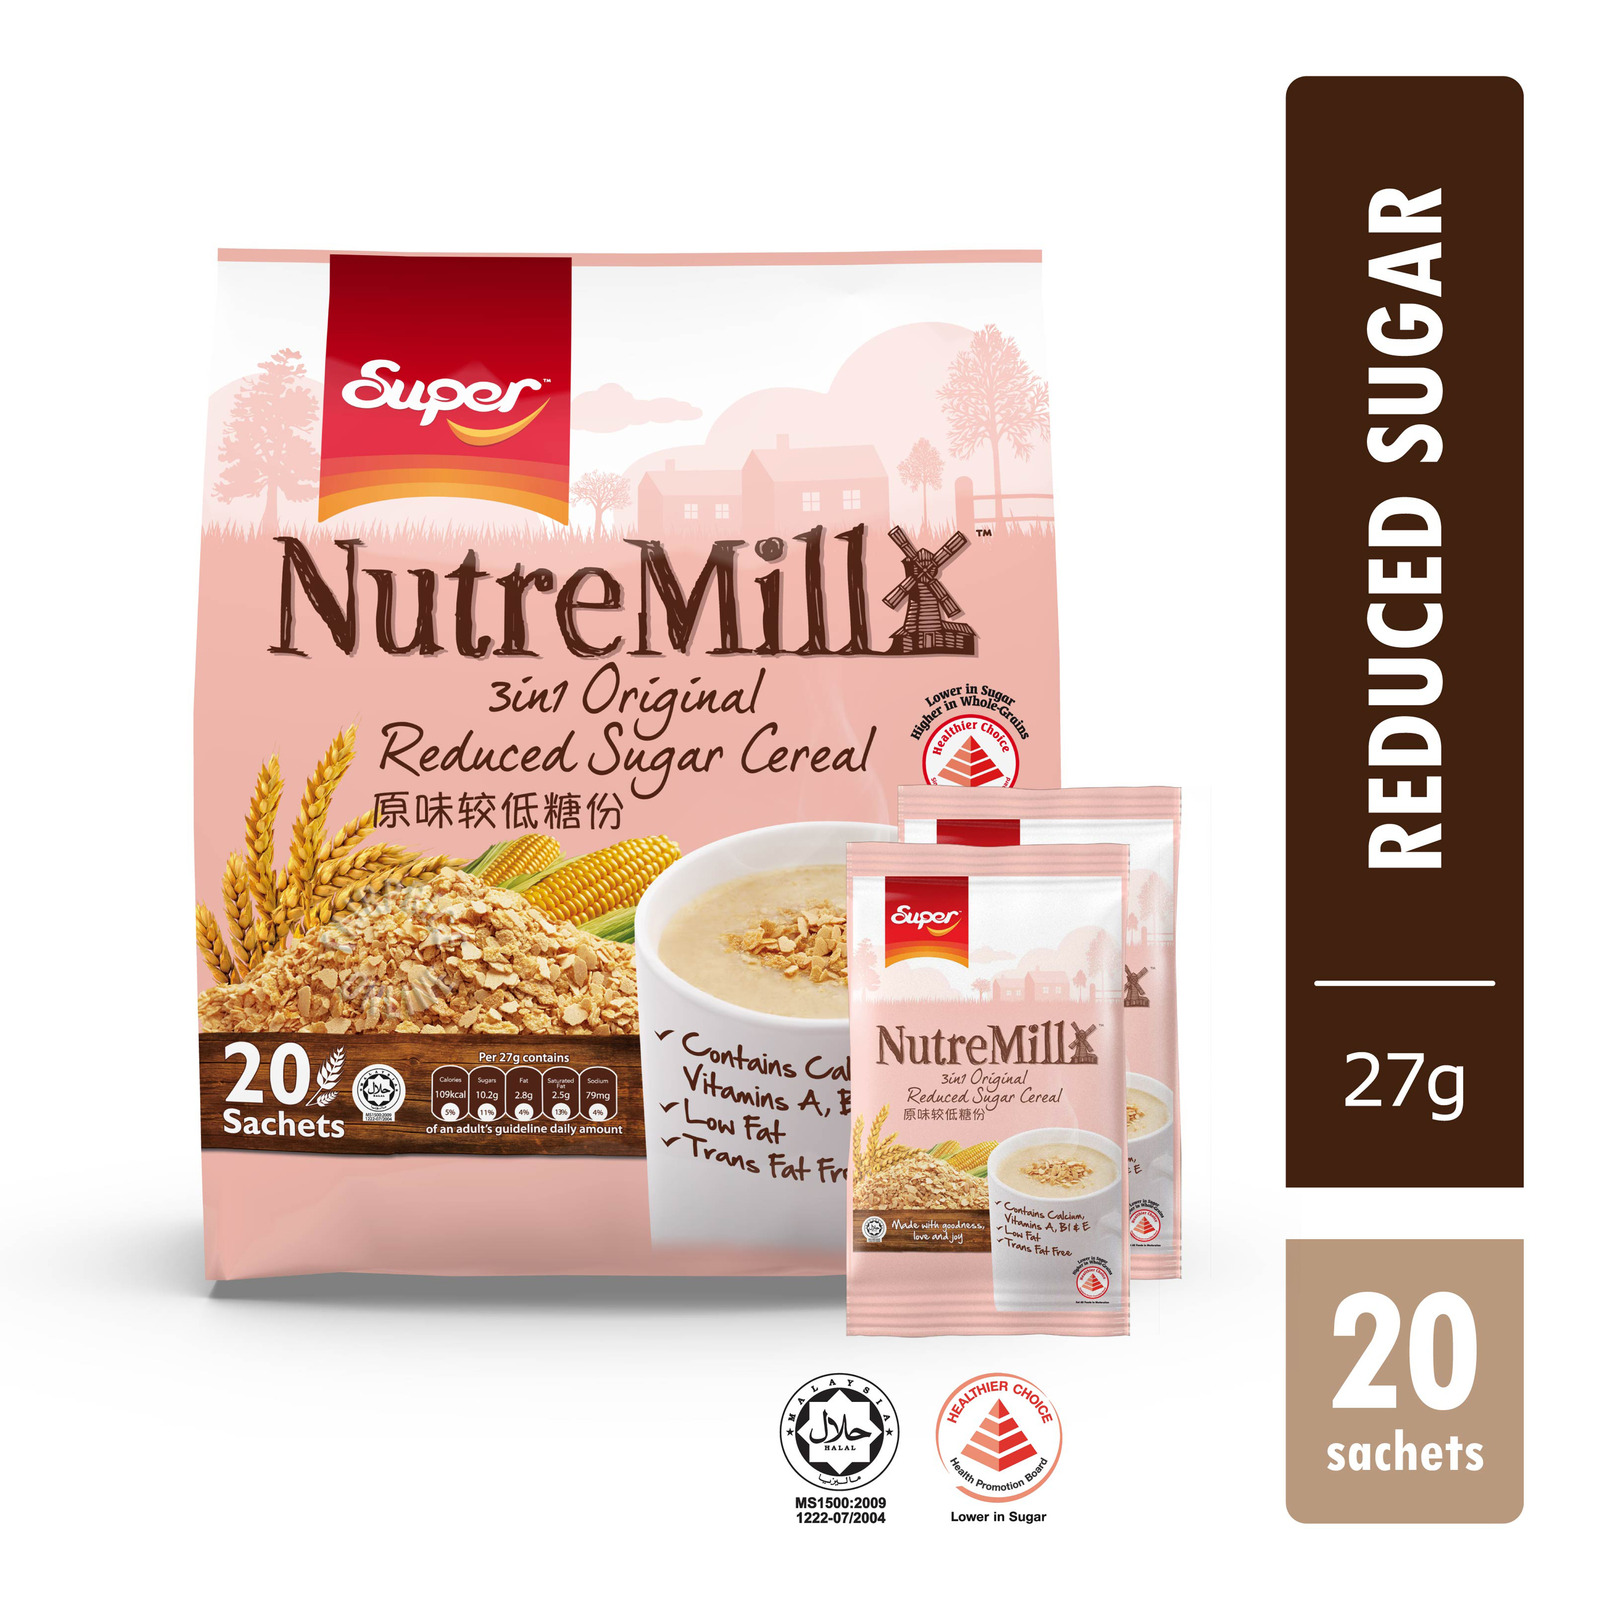 Super NutreMill 3 in 1 Instant Cereal Drink - Less Sugar